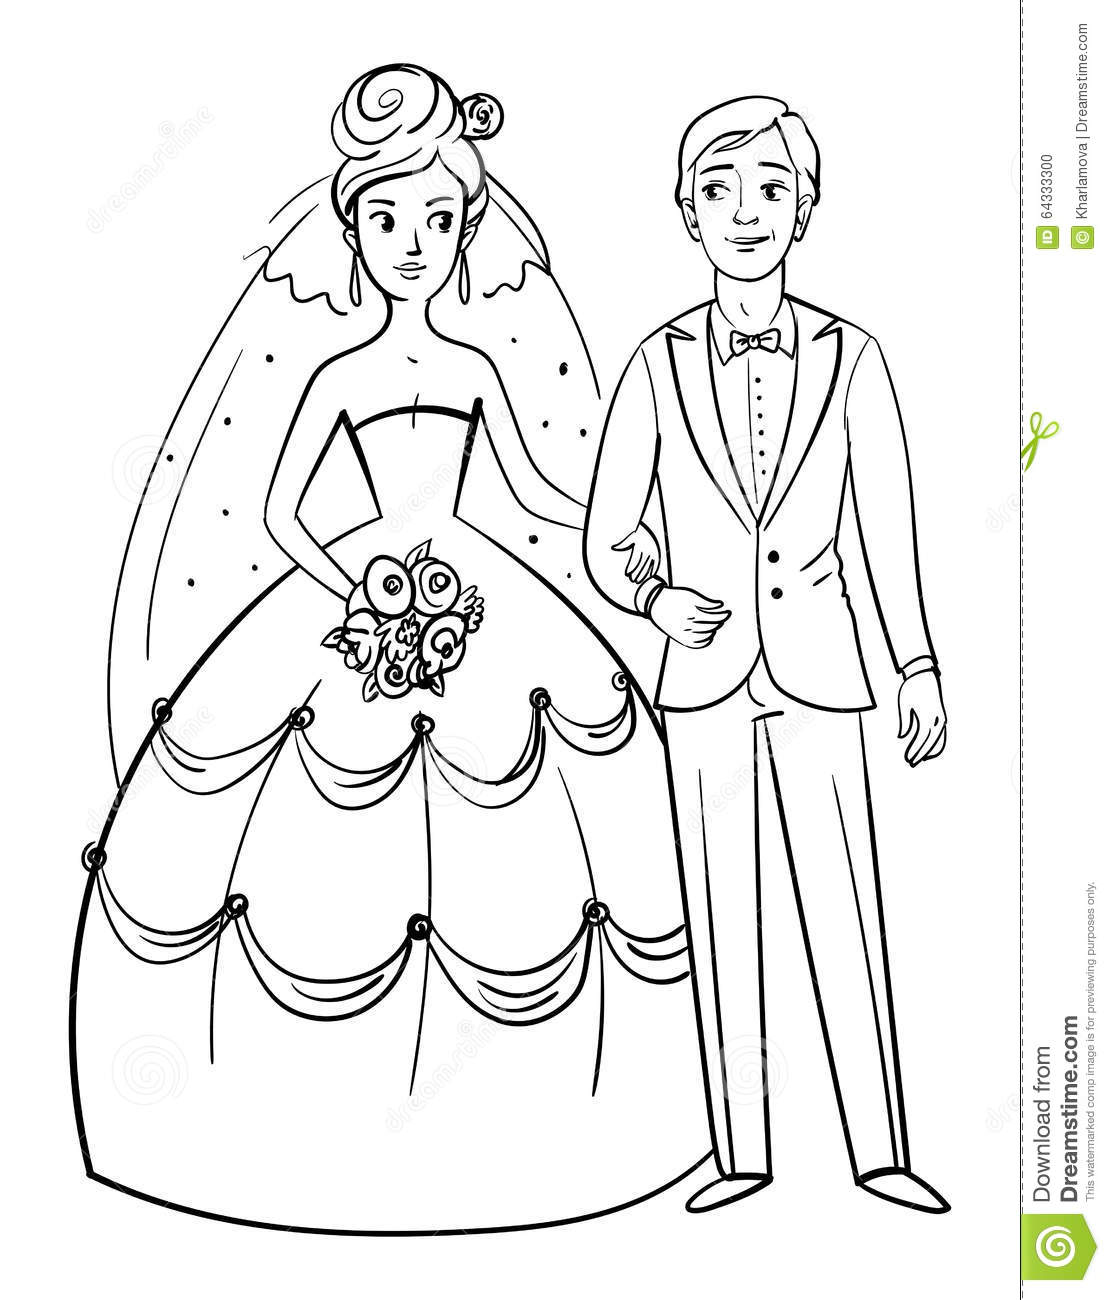 Bride and groom stock vector. Illustration of invitation - 64333300